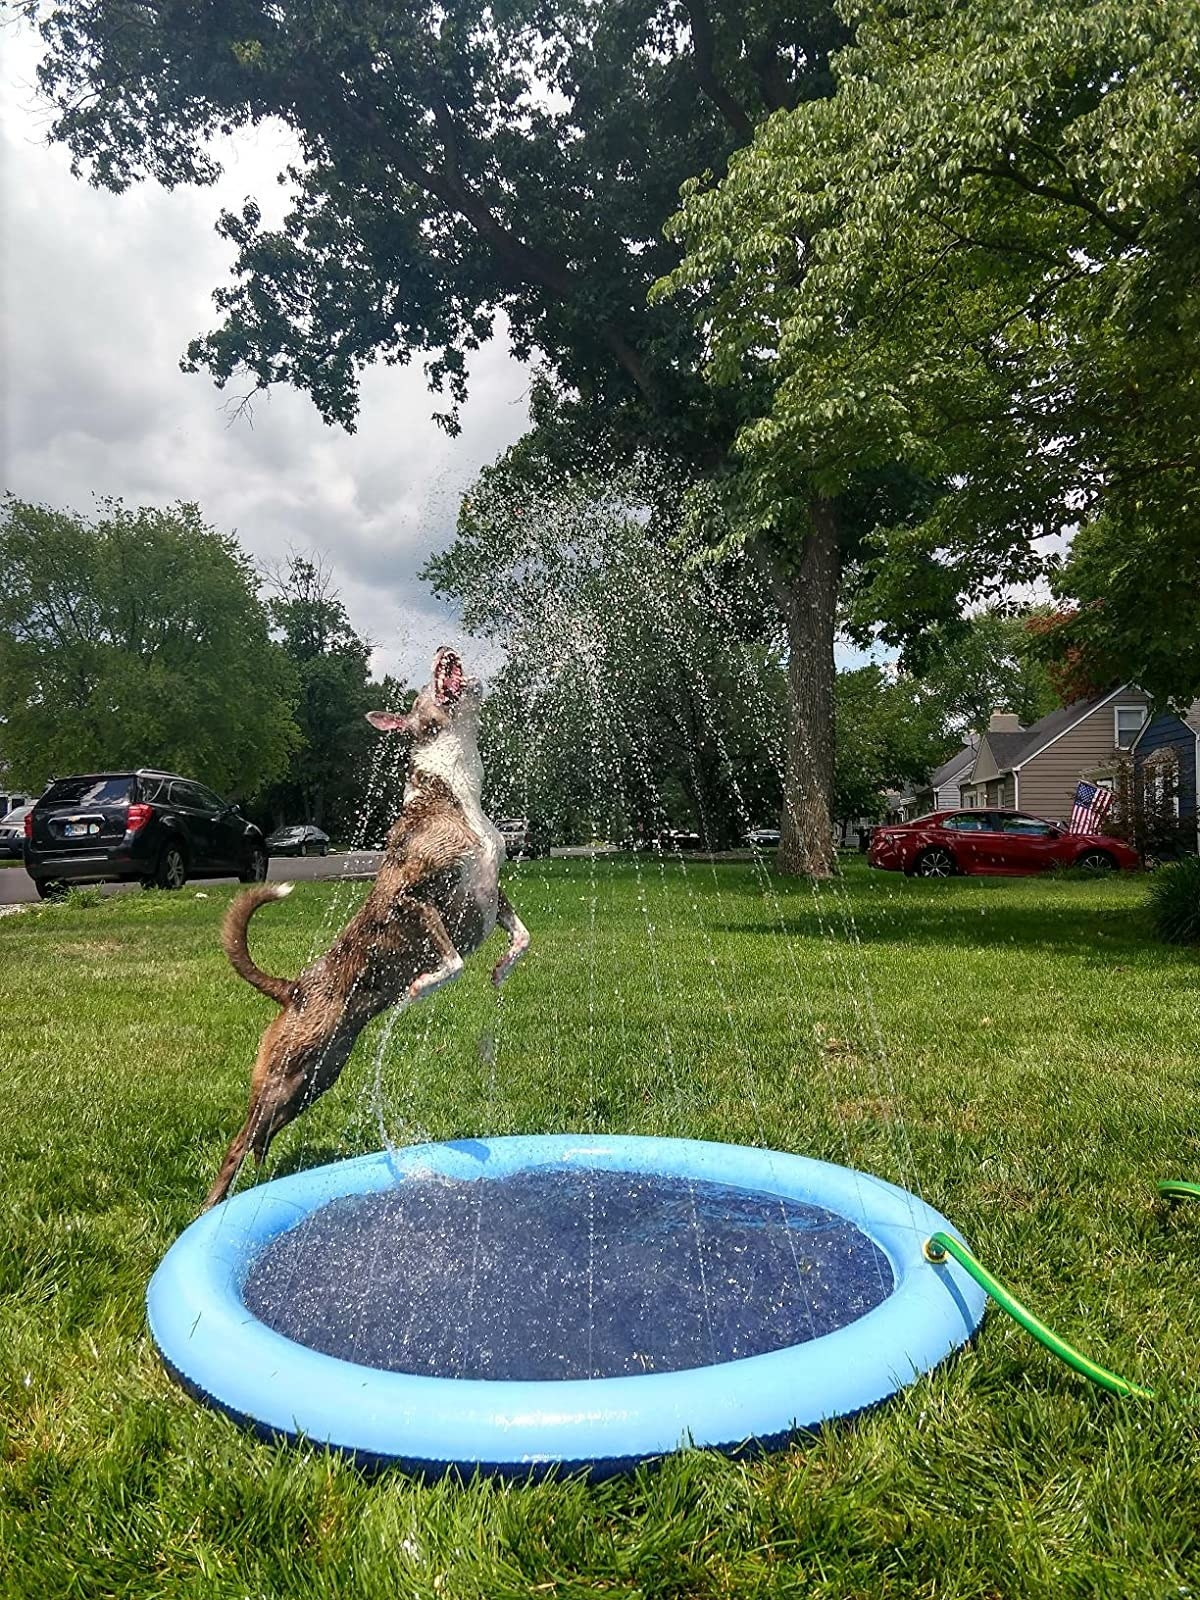 reviewer image of a dog jumping into the water sprayed by the sprinkler pad